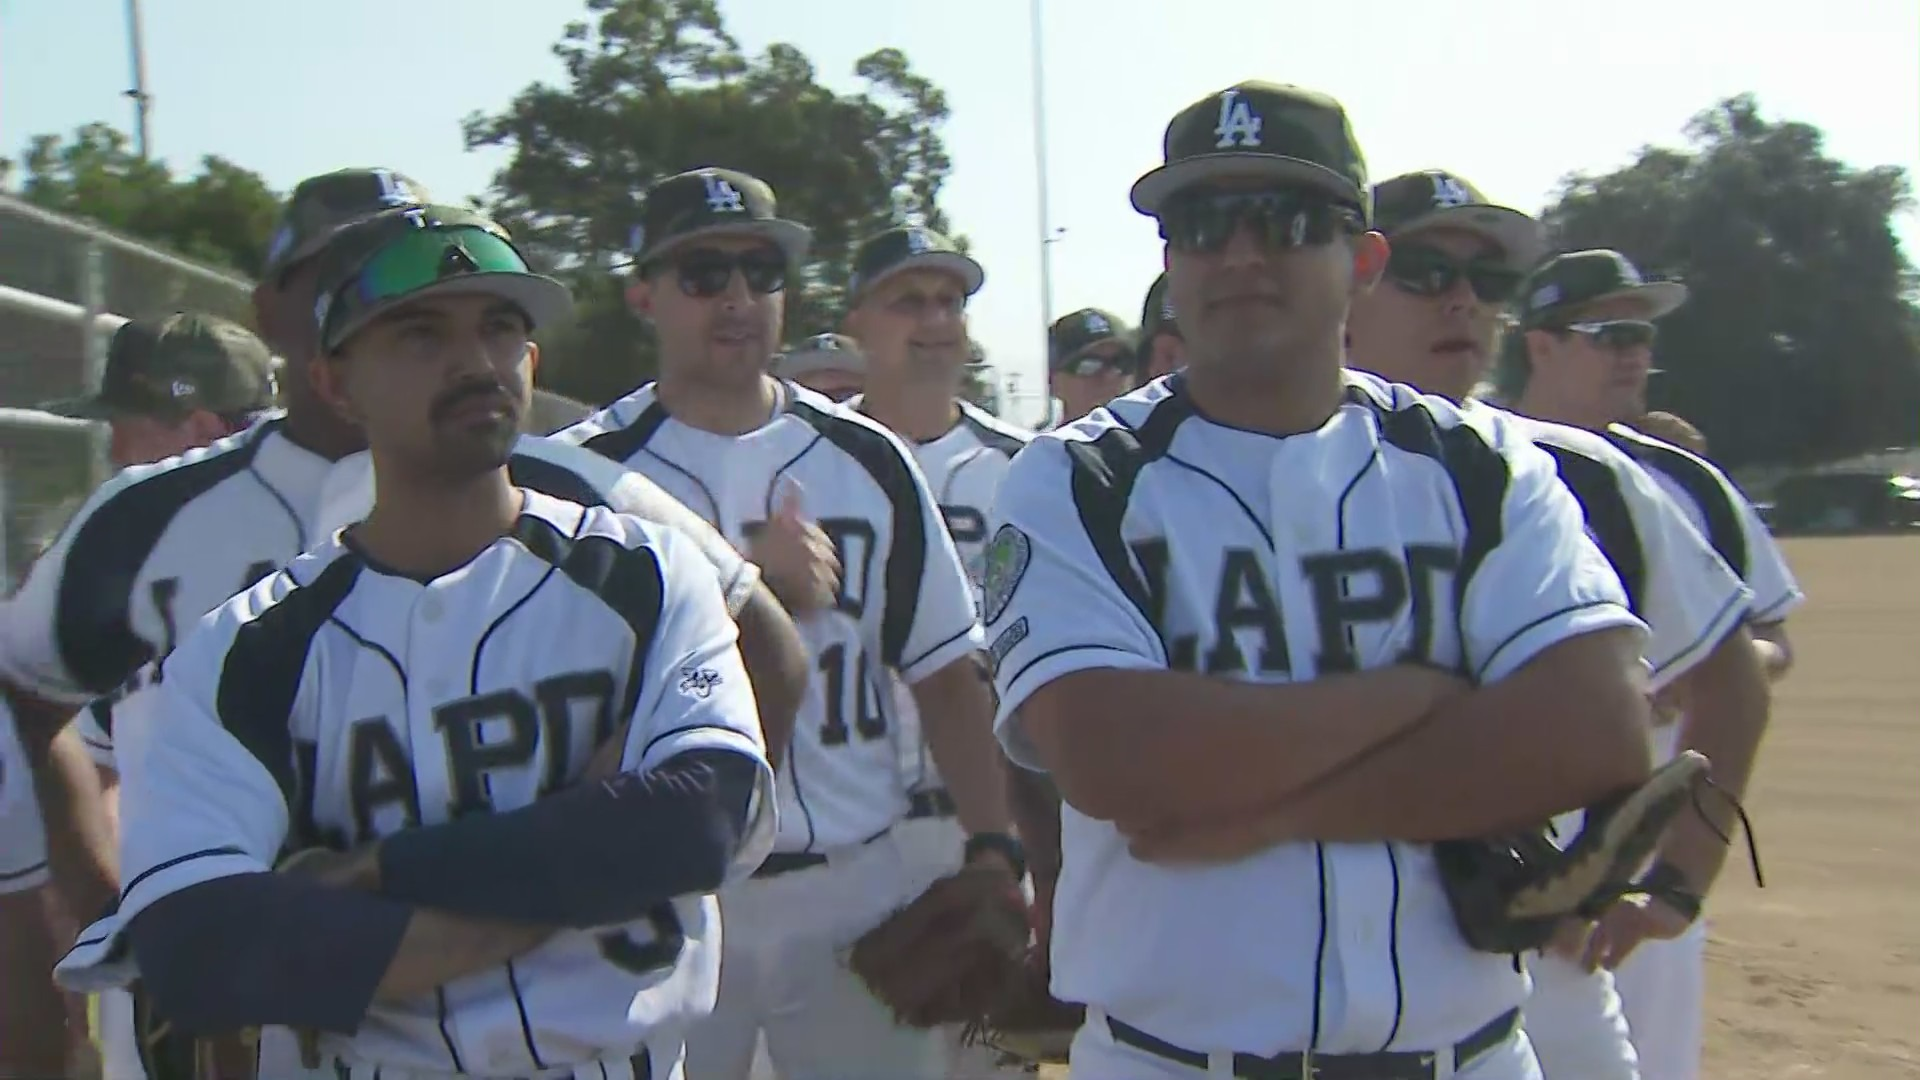 Los Angeles Police Department baseball team preps for Father's Day baseball game on June 19, 2021.